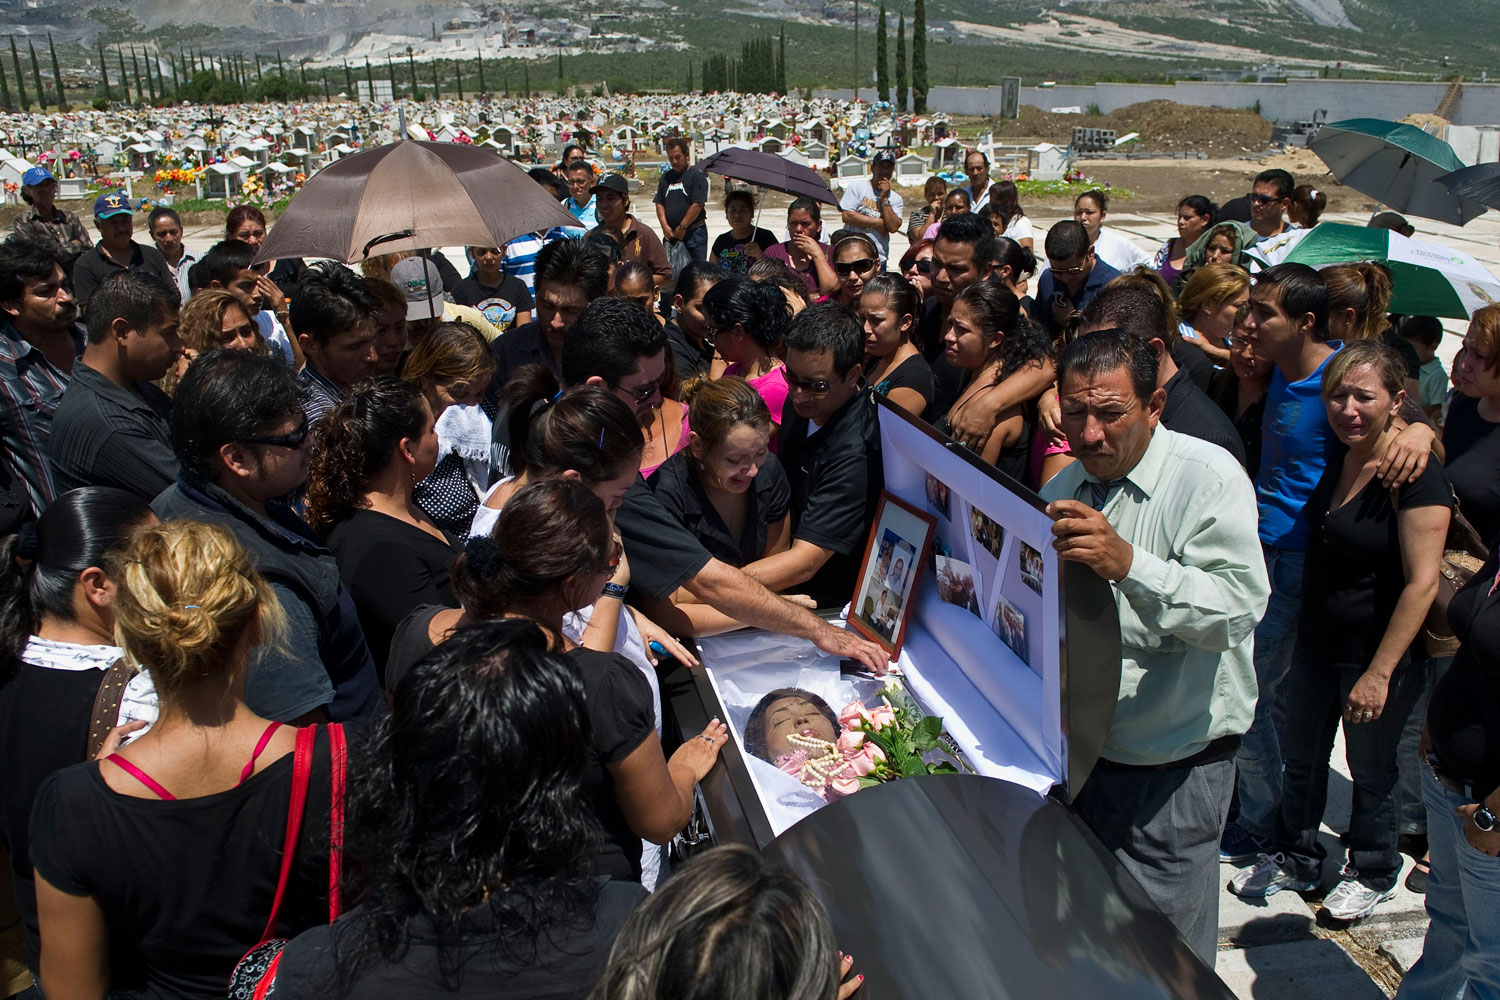 August 27, 2011. Relatives and friends of Maria Guadalupe Monsivais --one of the 52 victims of the Casino Royale fire-- mourn next to her coffin, during the wake in Monterrey, Mexico. Mexico offered a reward Friday of $2.4 million for information leading to the arrest of armed men who torched the casino on August 25, leaving 52 people to burn and choke to death in a blazing inferno. The particularly callous attack shocked a nation routinely used to grim murders and high tolls in a drugs war that has claimed more than 41,000 lives since Calderon launched a military crackdown in 2006.